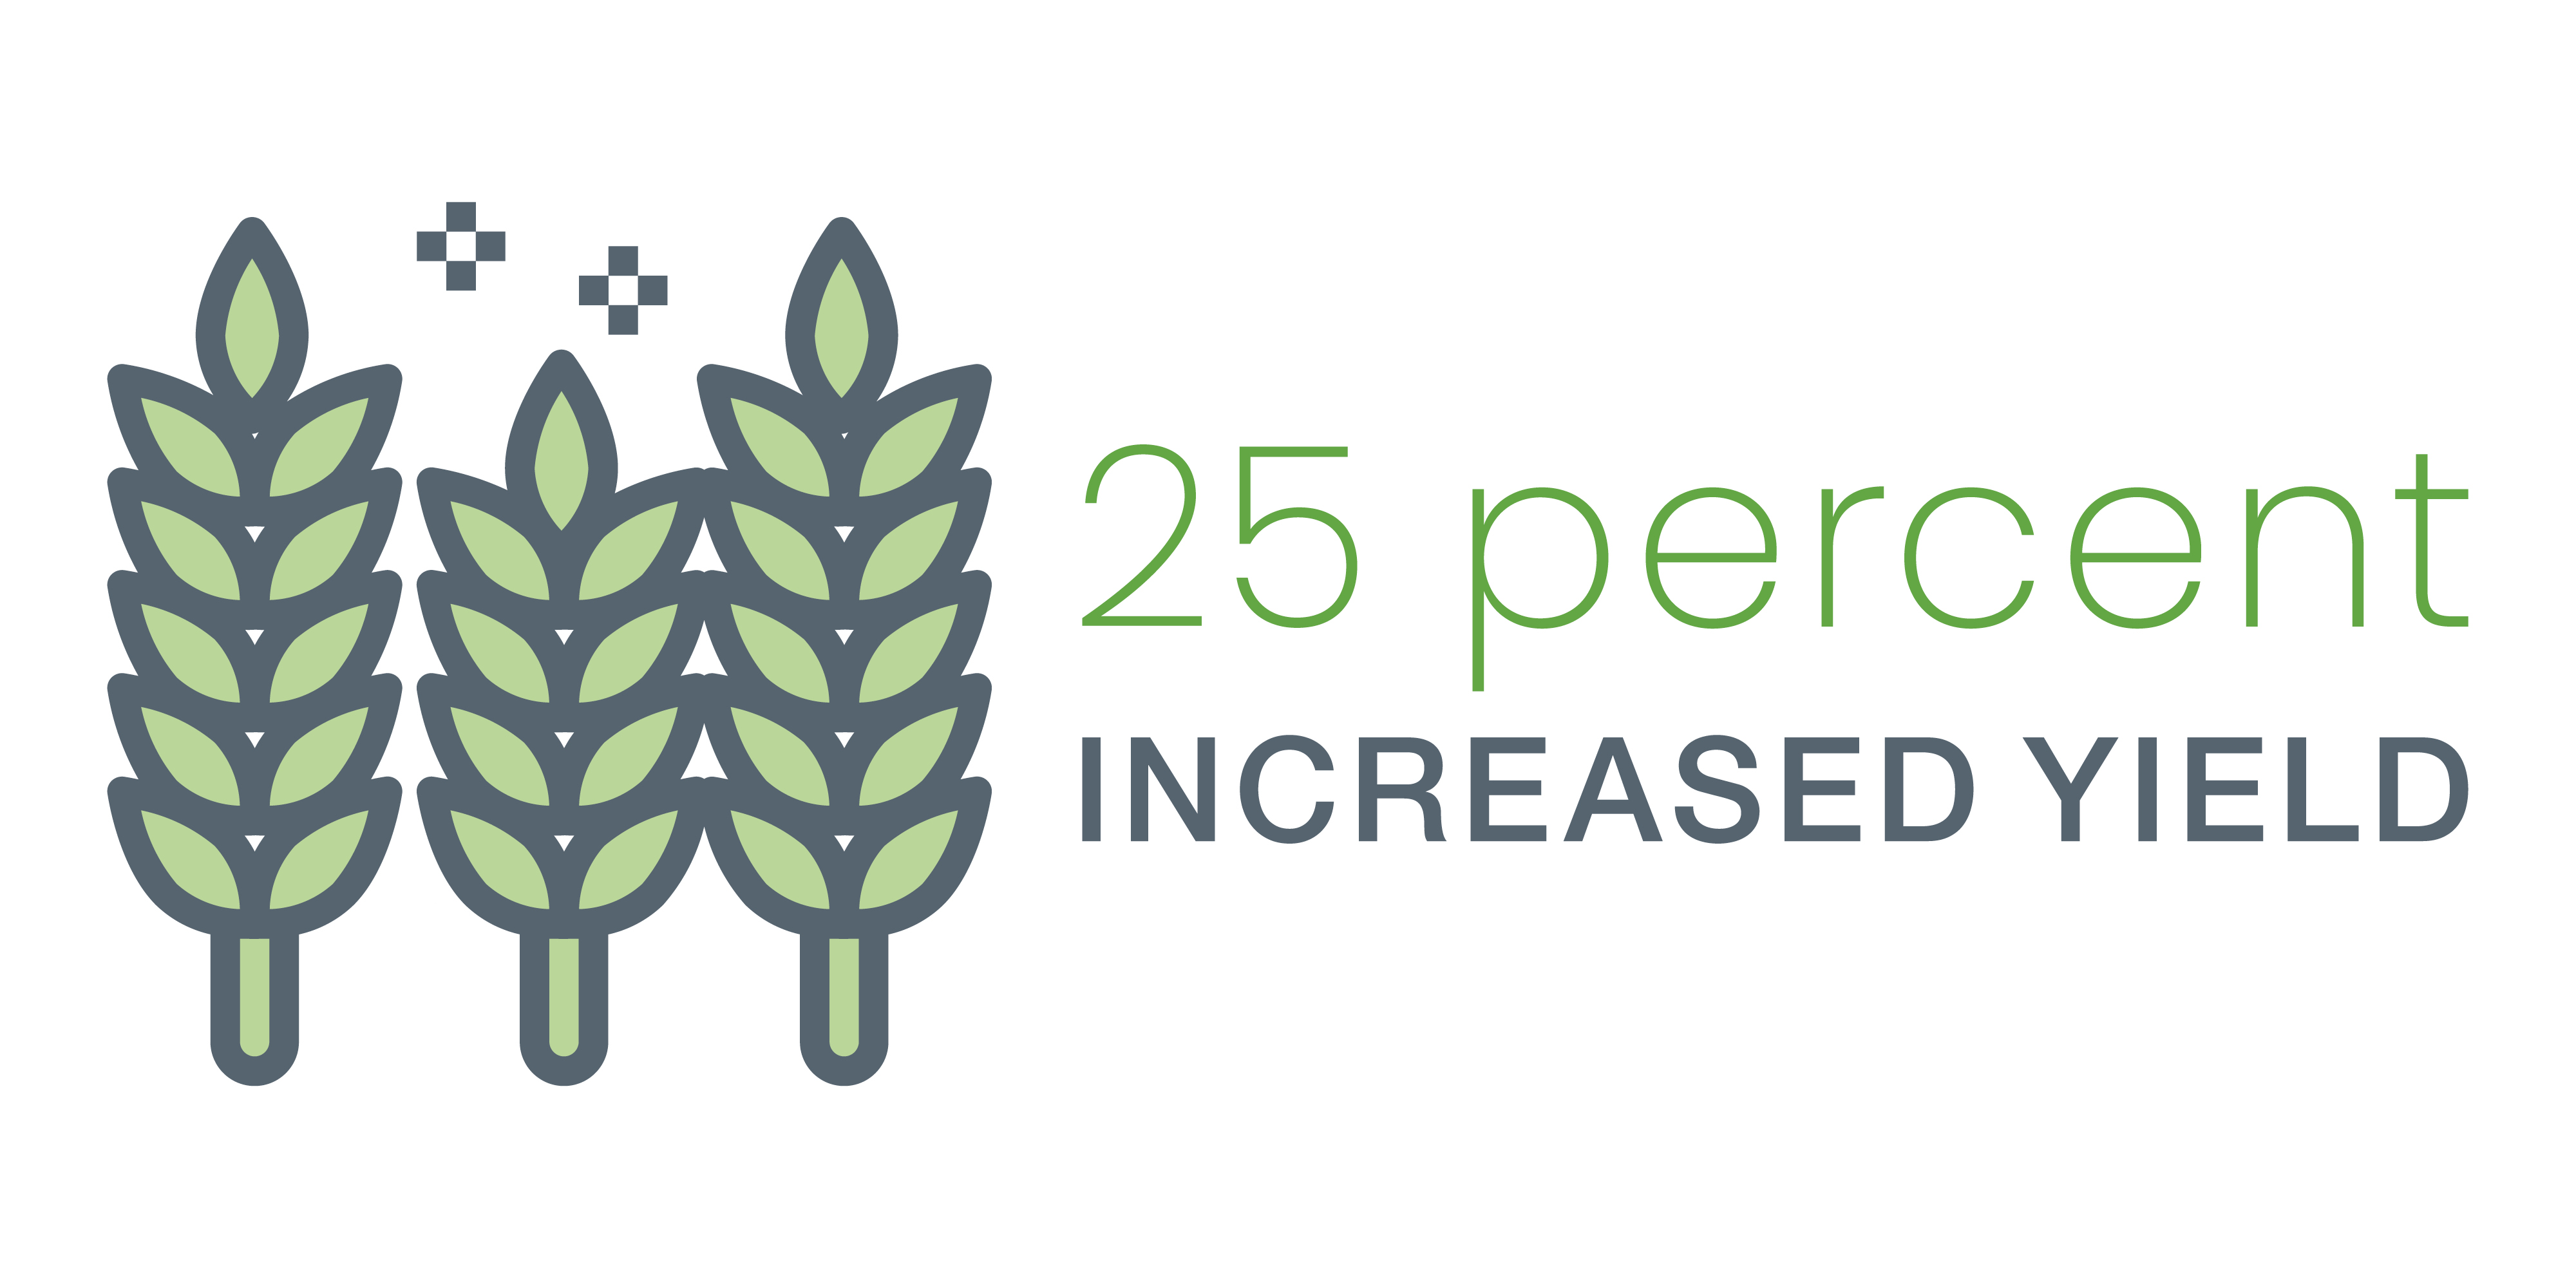 25 percent increased yield